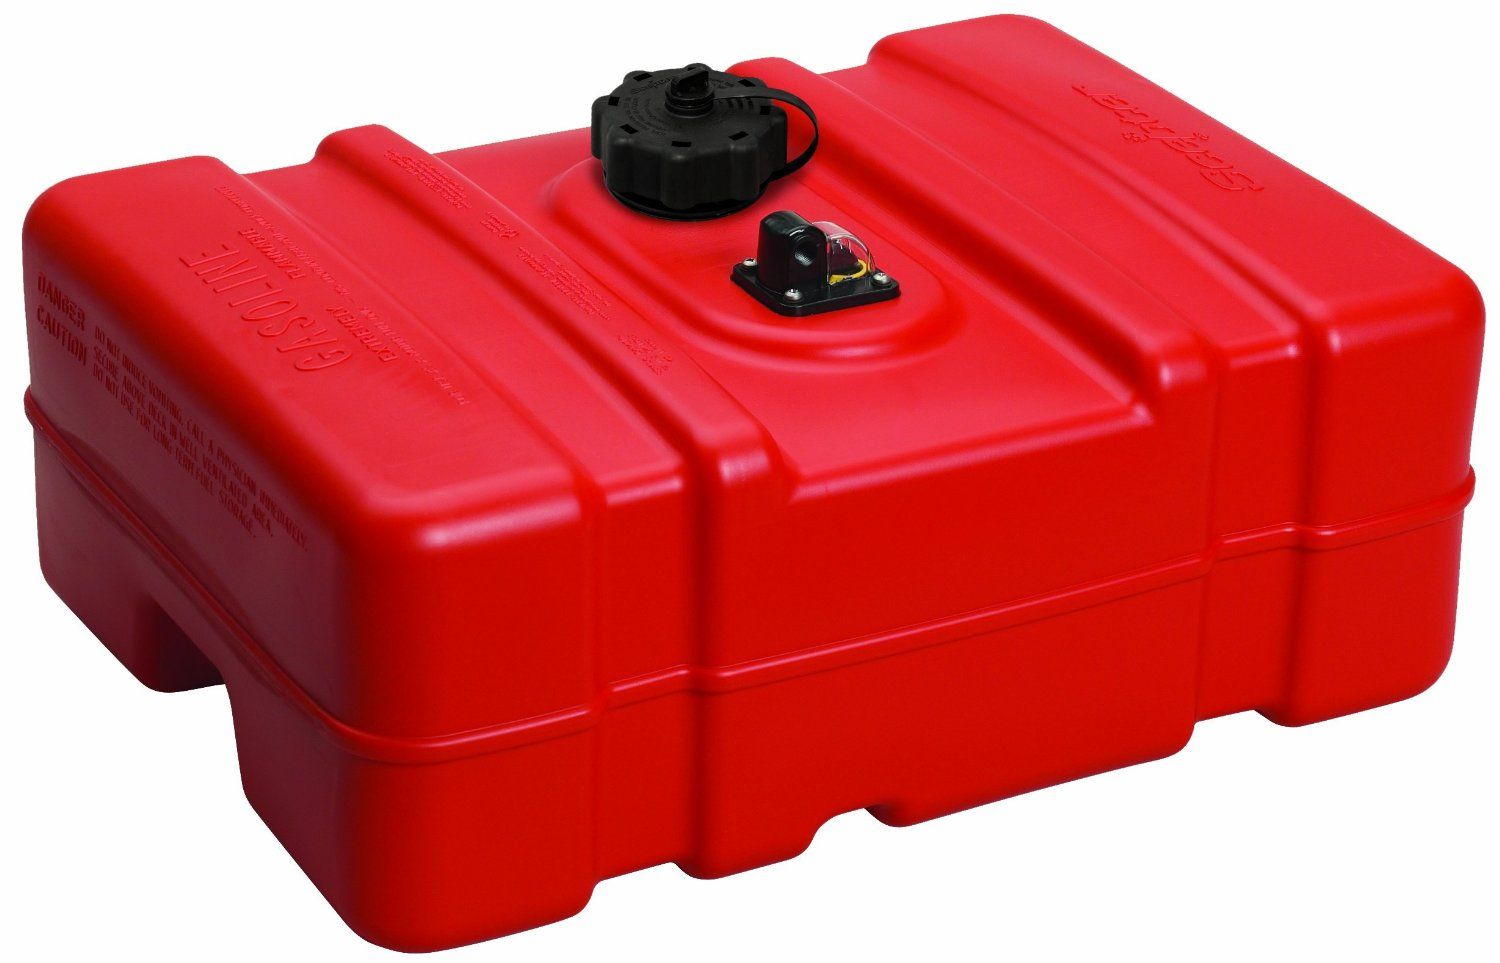 Amazon Com Moeller 630013lp Portable Fuel Tank 12 Gallon Red Boat Fuel Tanks Sports Outdoors Fuel Gas Gas Tanks Fuel